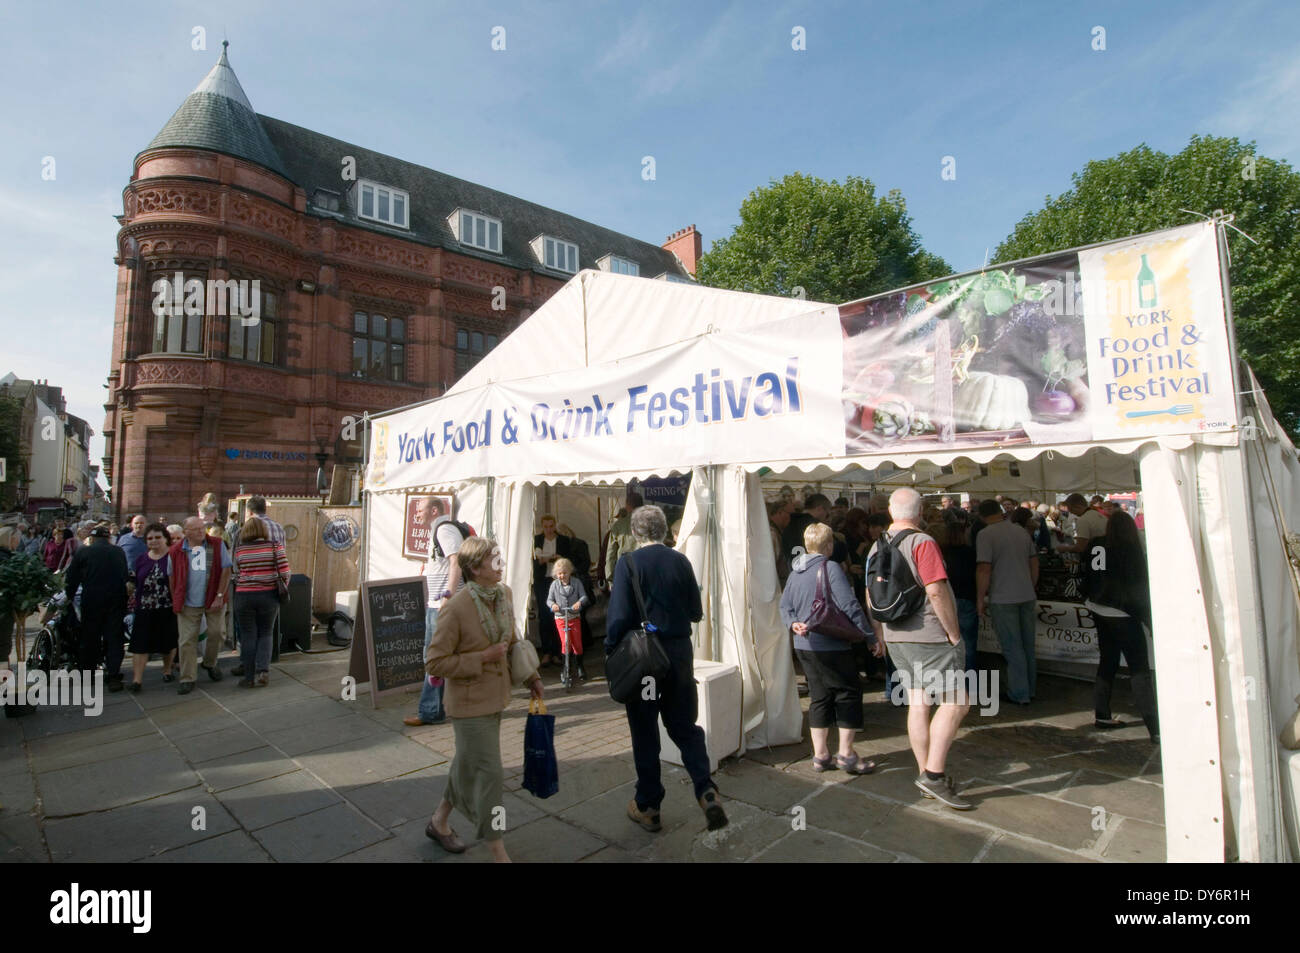 york food festival uk town center busy high street streets - Stock Image